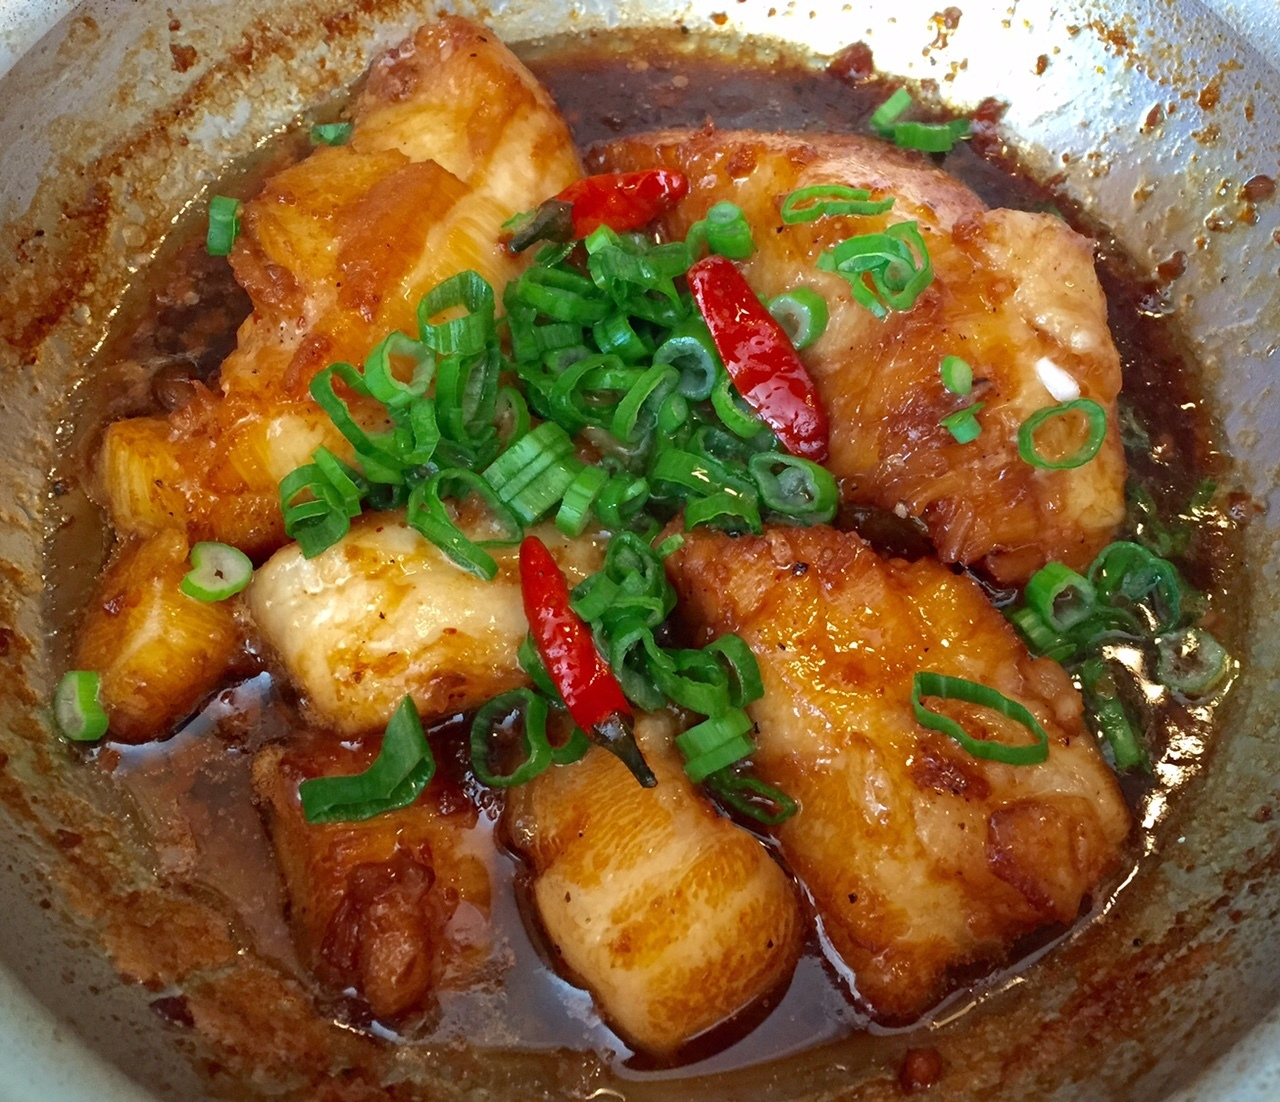 Caramelized Seabass in claypot (Ca seabass kho to)